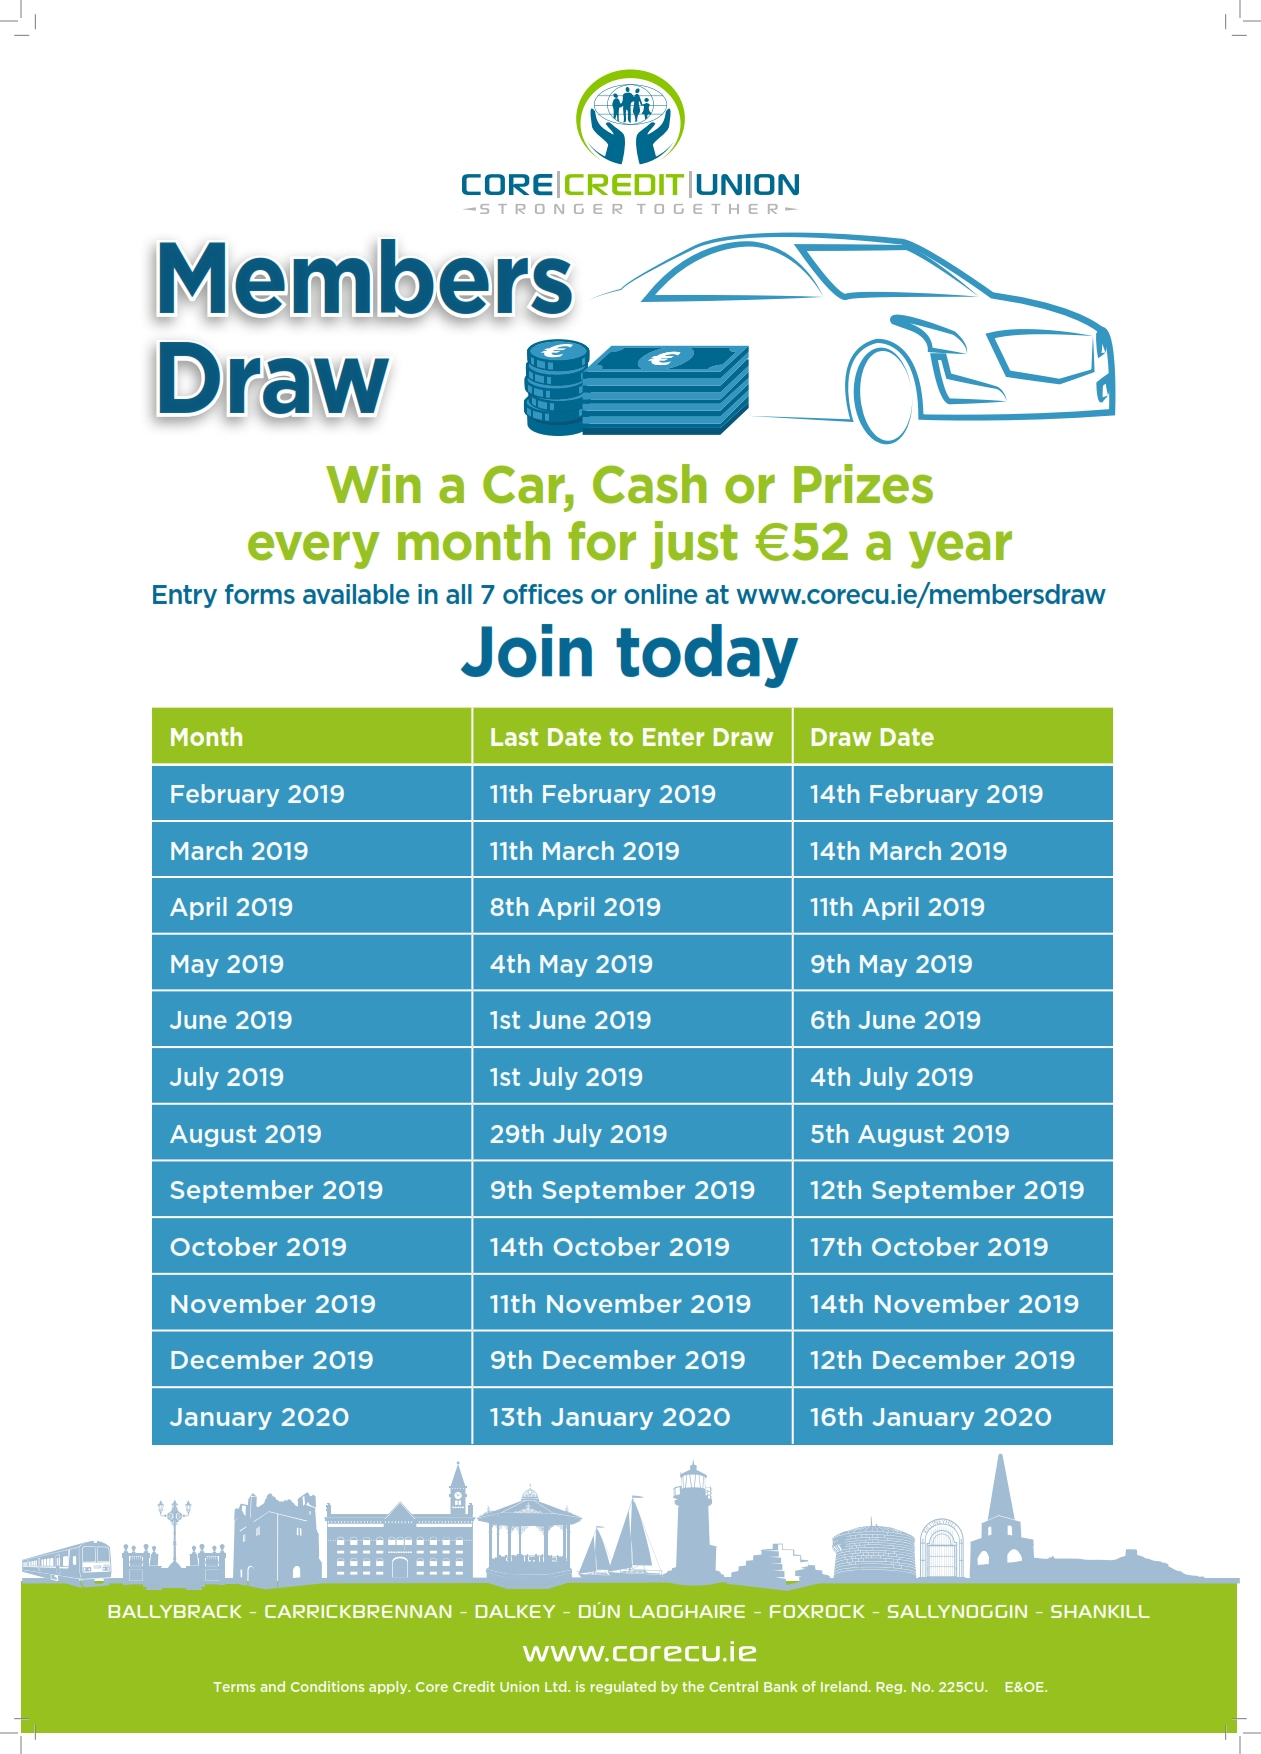 Win a Car every month all for €52 a year with Core Credit Union